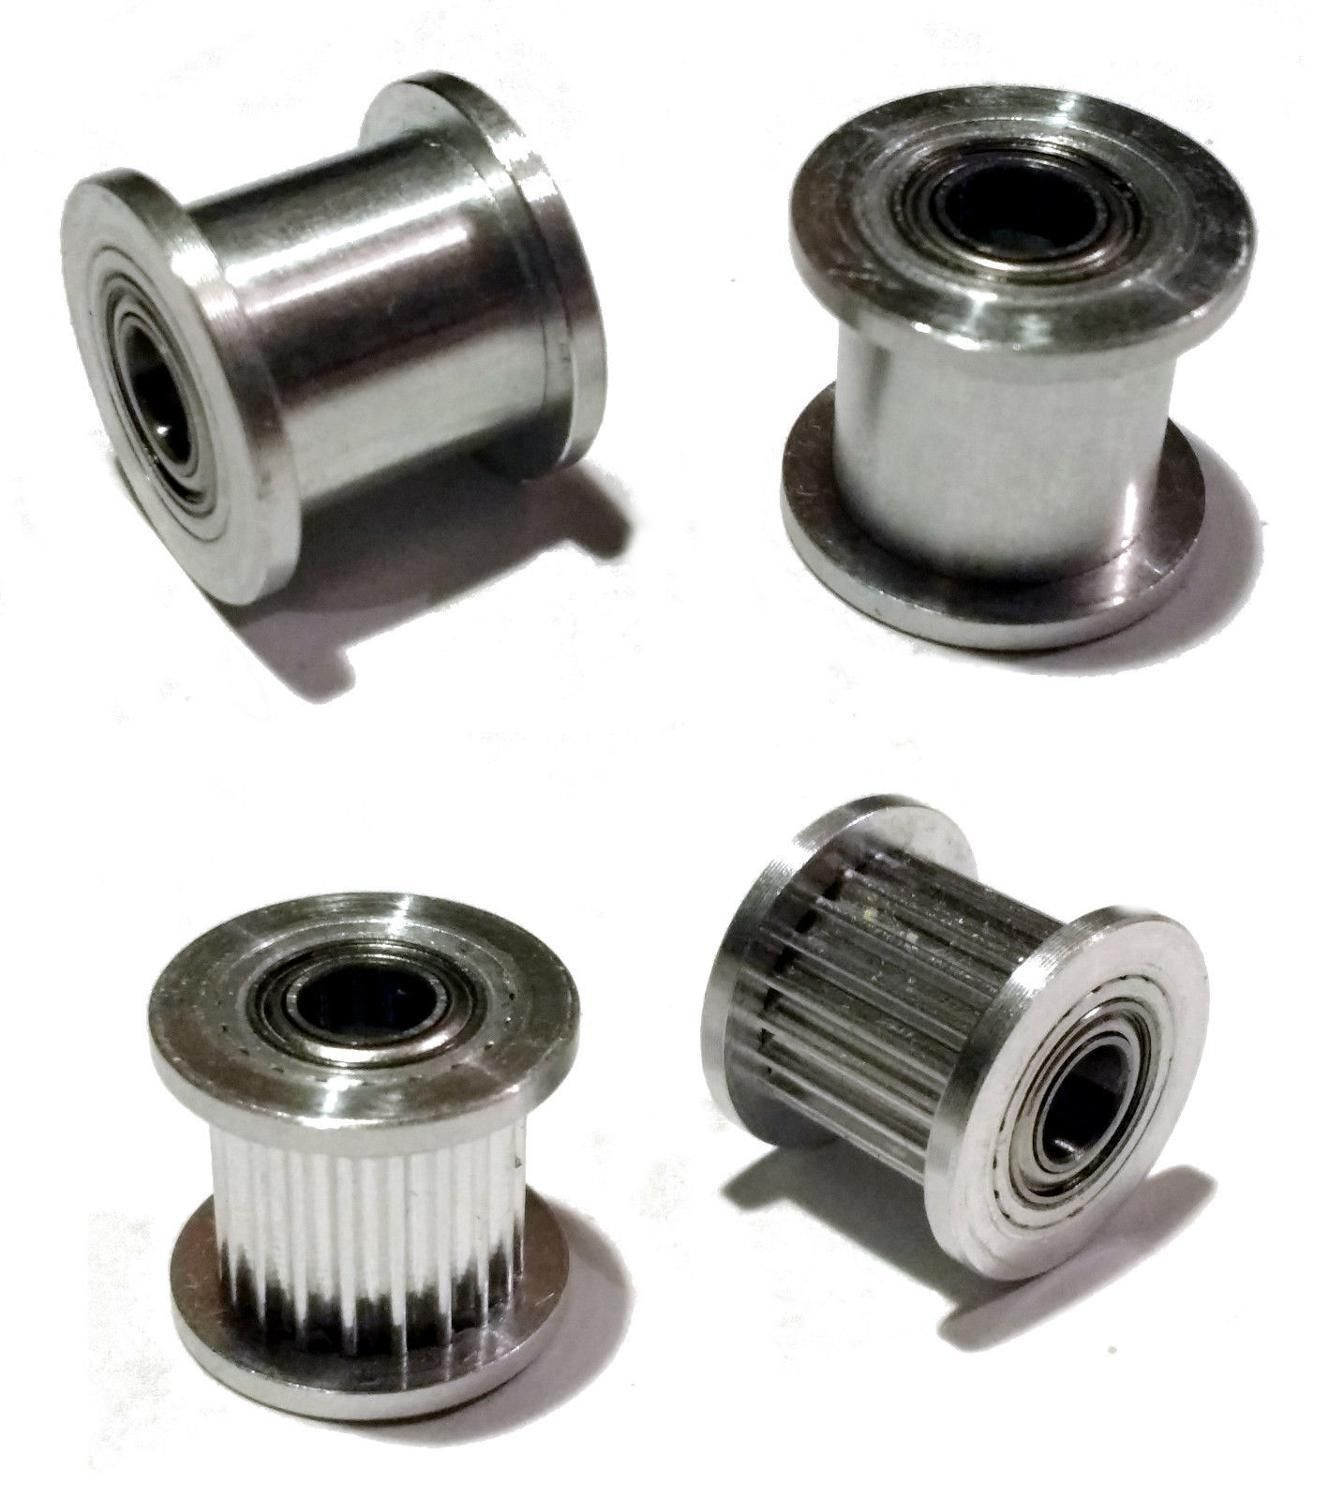 Horizon Elephant free shipping 3D Printer GT2 Idler Pulley, Toothed and Smooth - 5mm Bore for 10mm wide belt